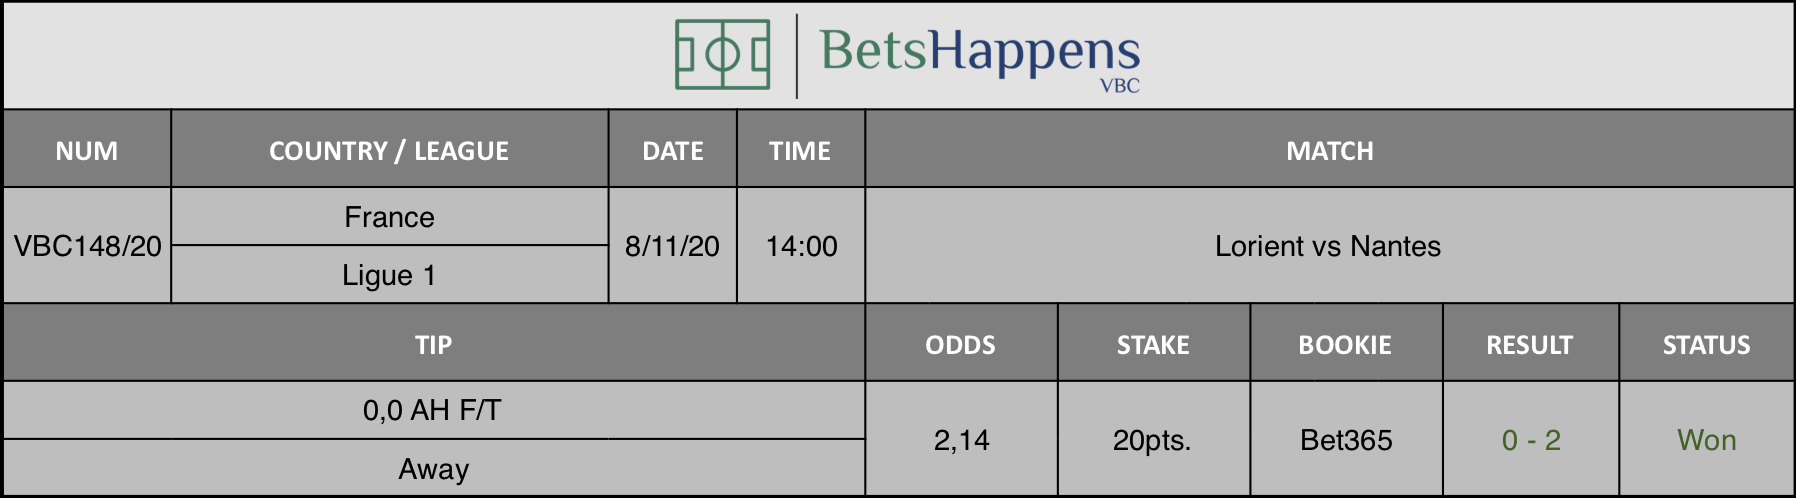 Results of our tip for the Lorient vs Nantes match where 0,0 AH F/T  Away is recommended.